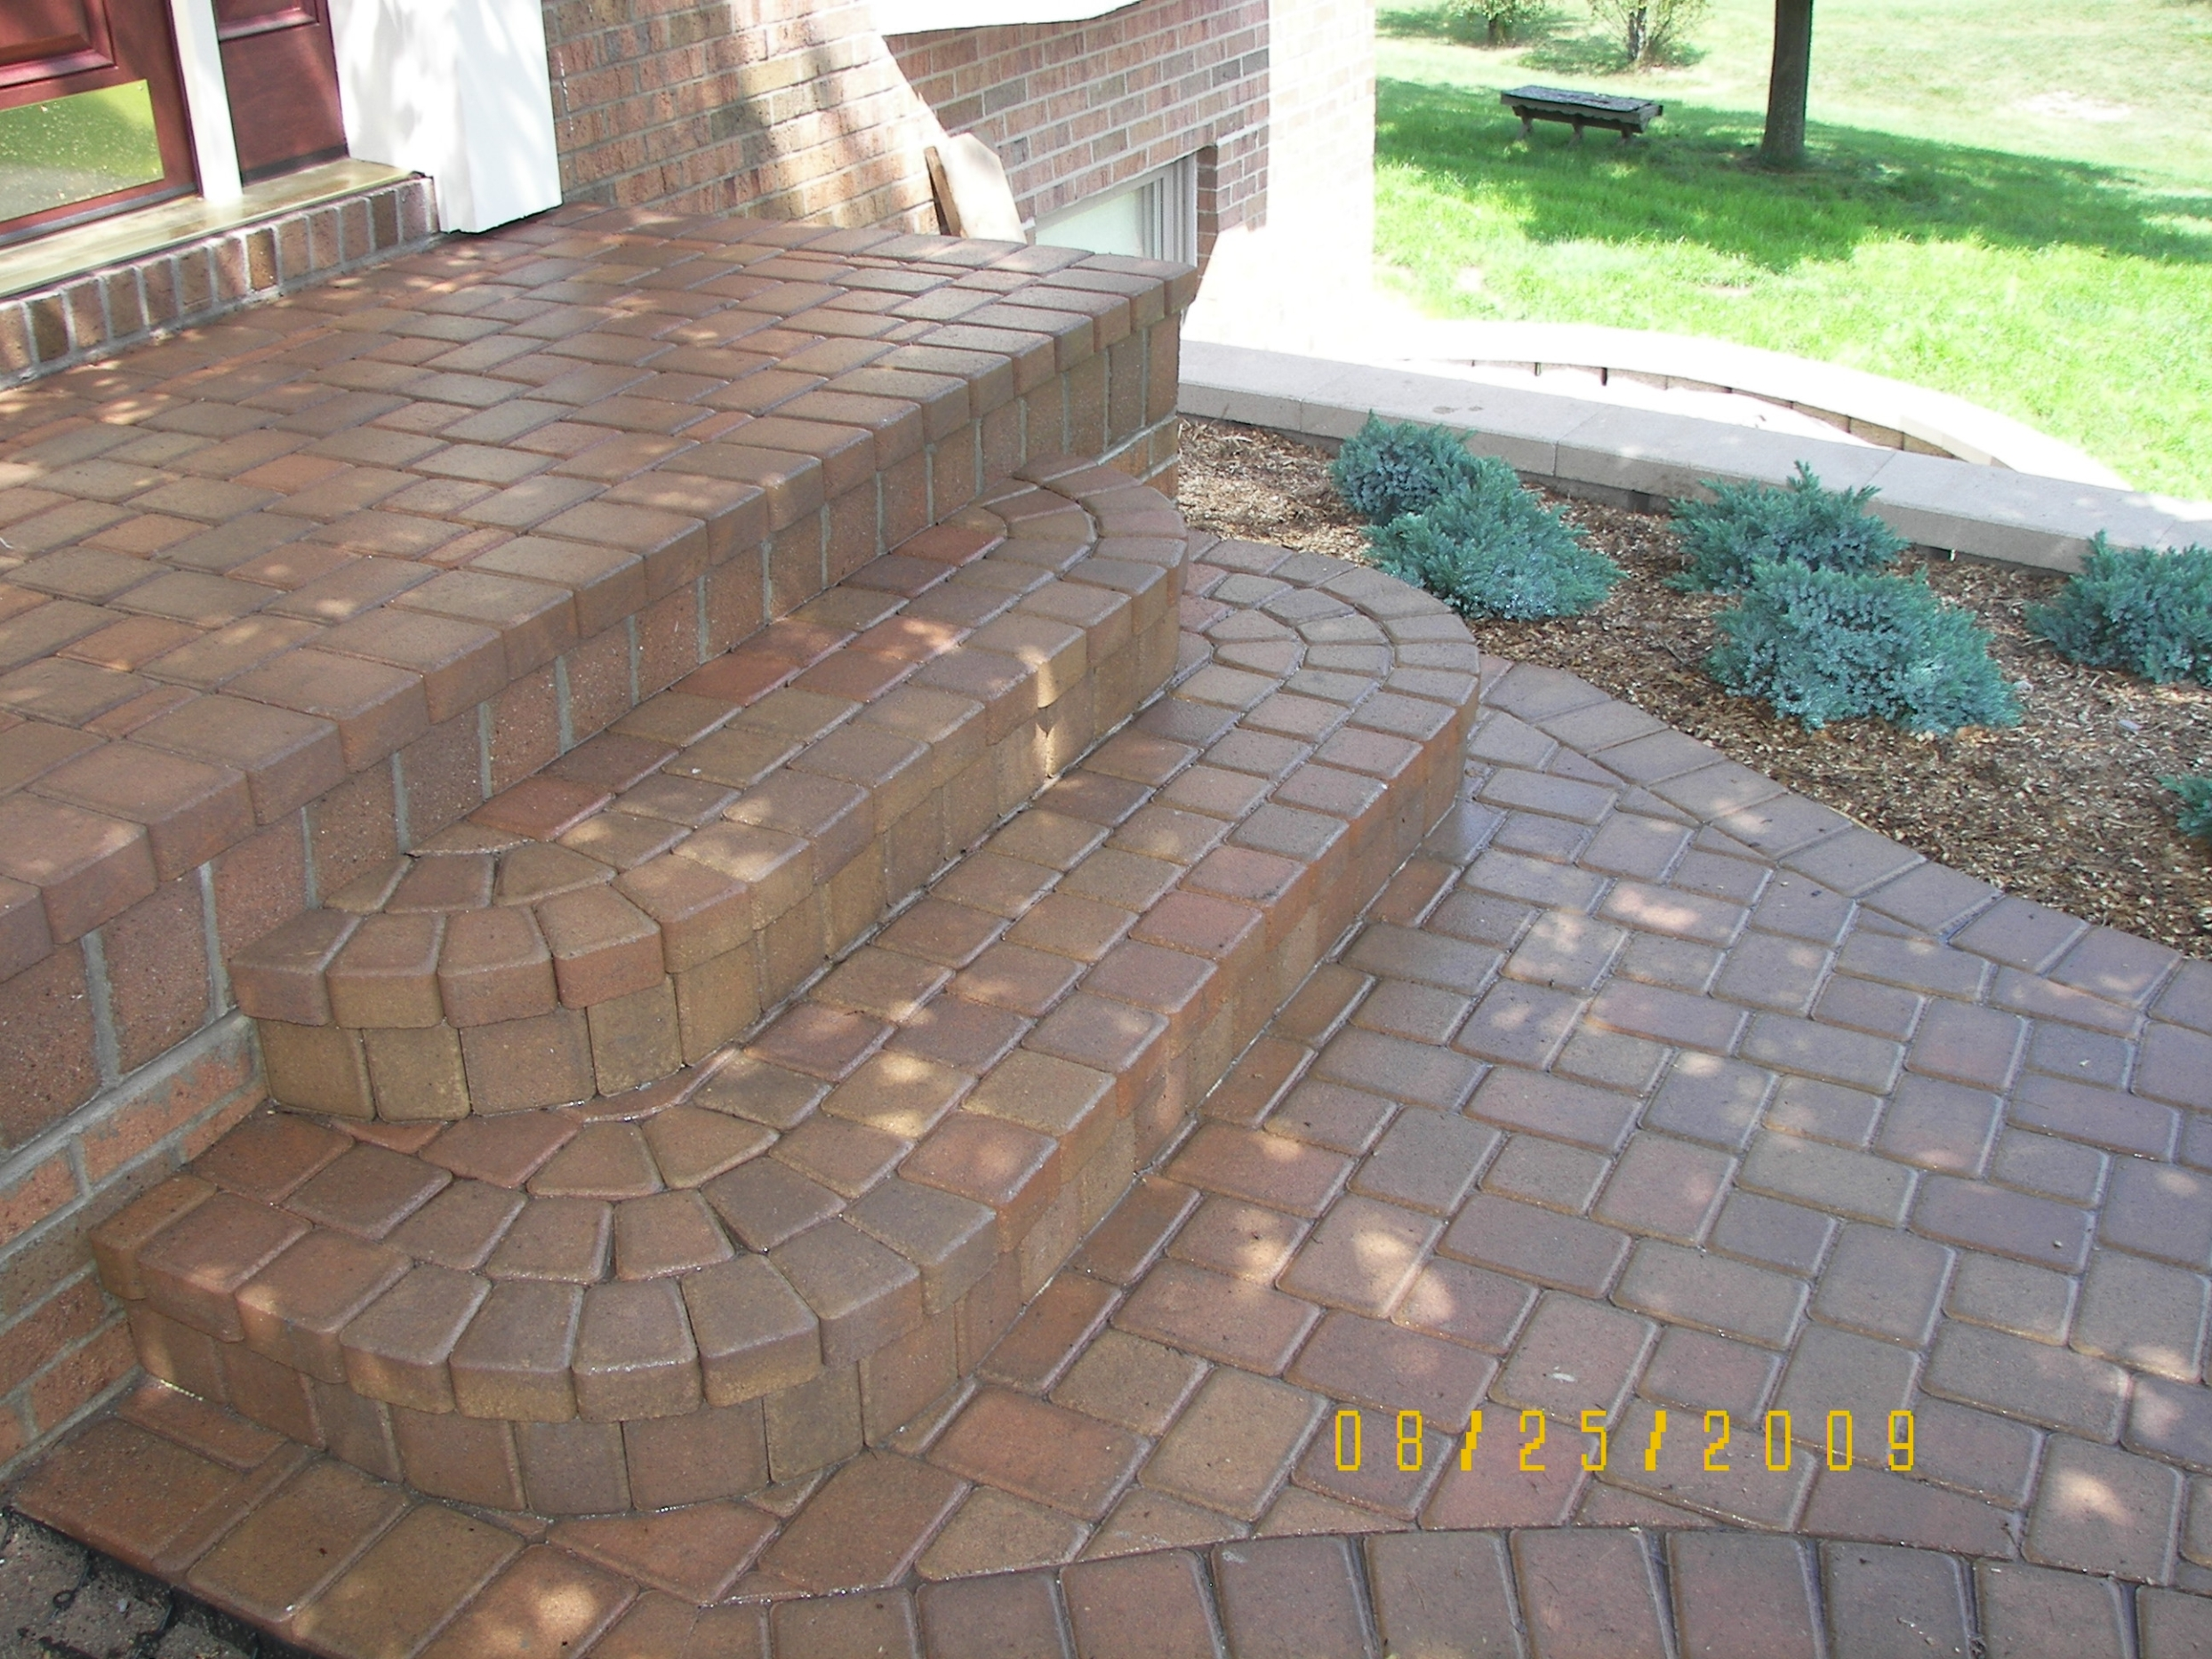 How to build steps with pavers - Brick Paver Step And Porch Round Corners